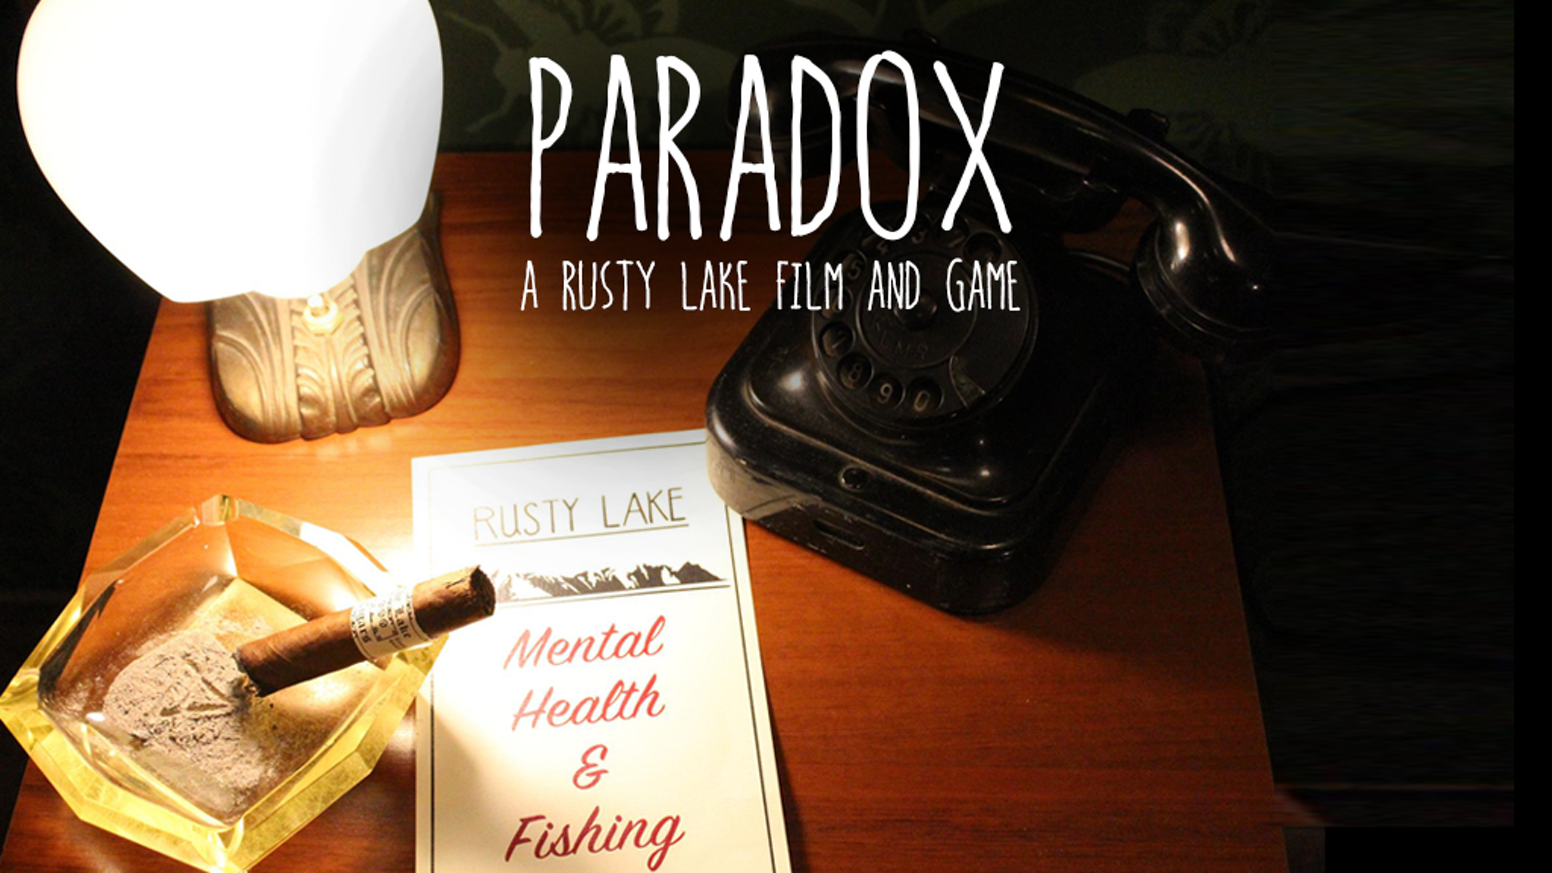 Paradox a cube escape game & rusty lake short film by rusty lake.